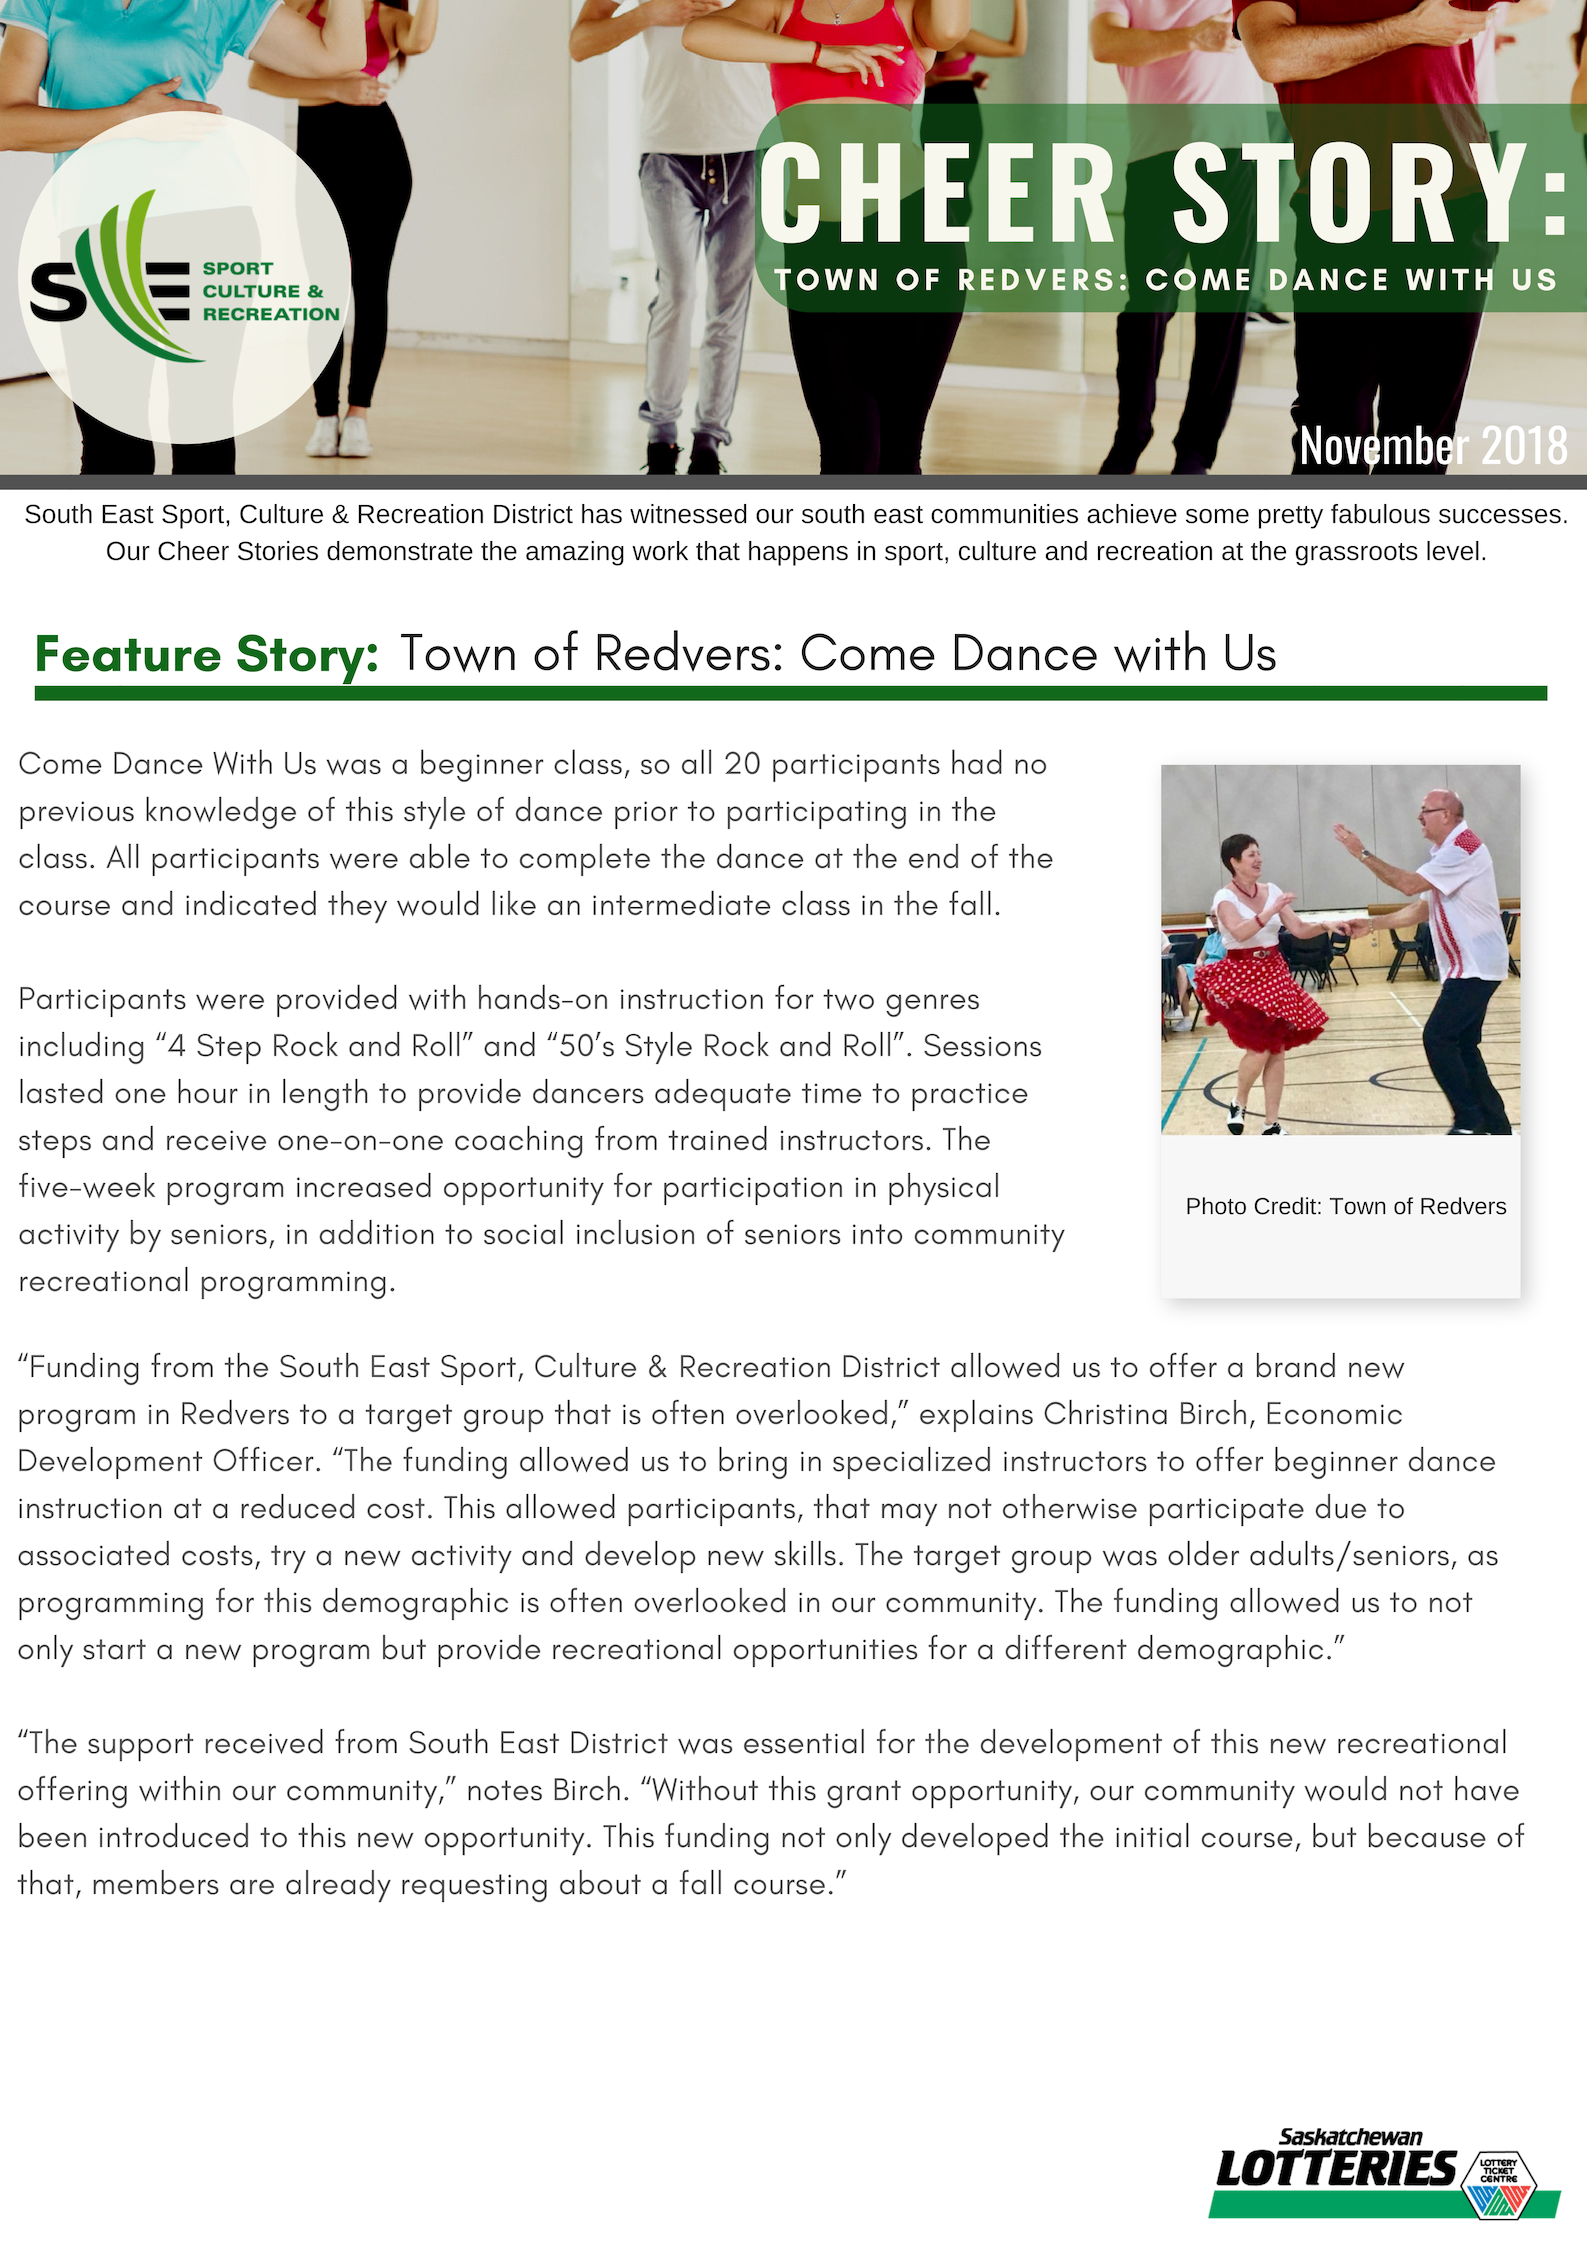 Cheer Story: Redvers Come Dance With Us - Image 1